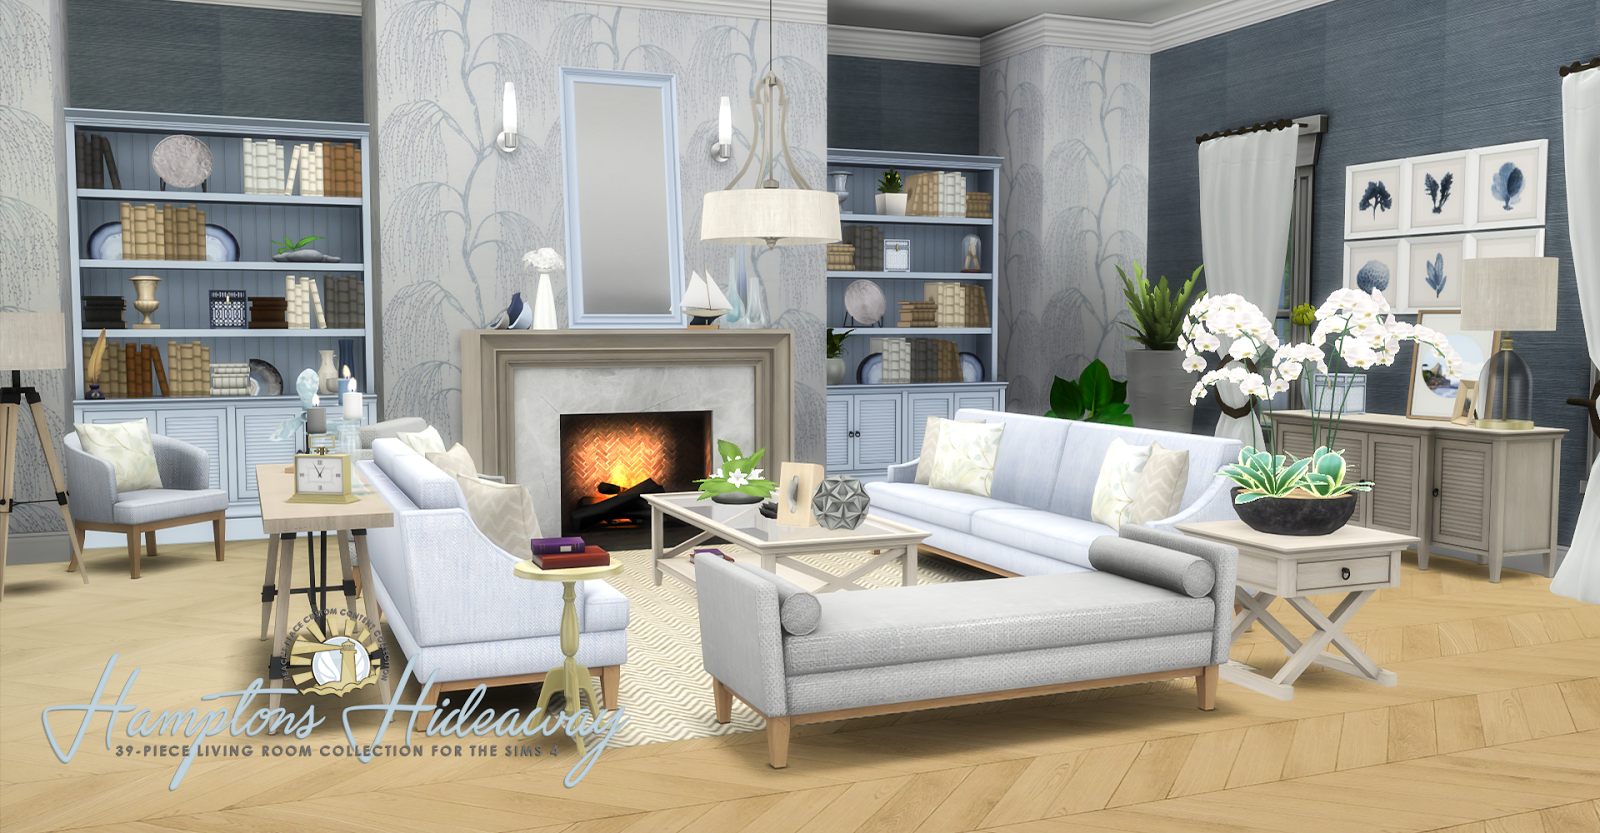 My sims 4 blog updated hamptons hideaway living room for Three room set design